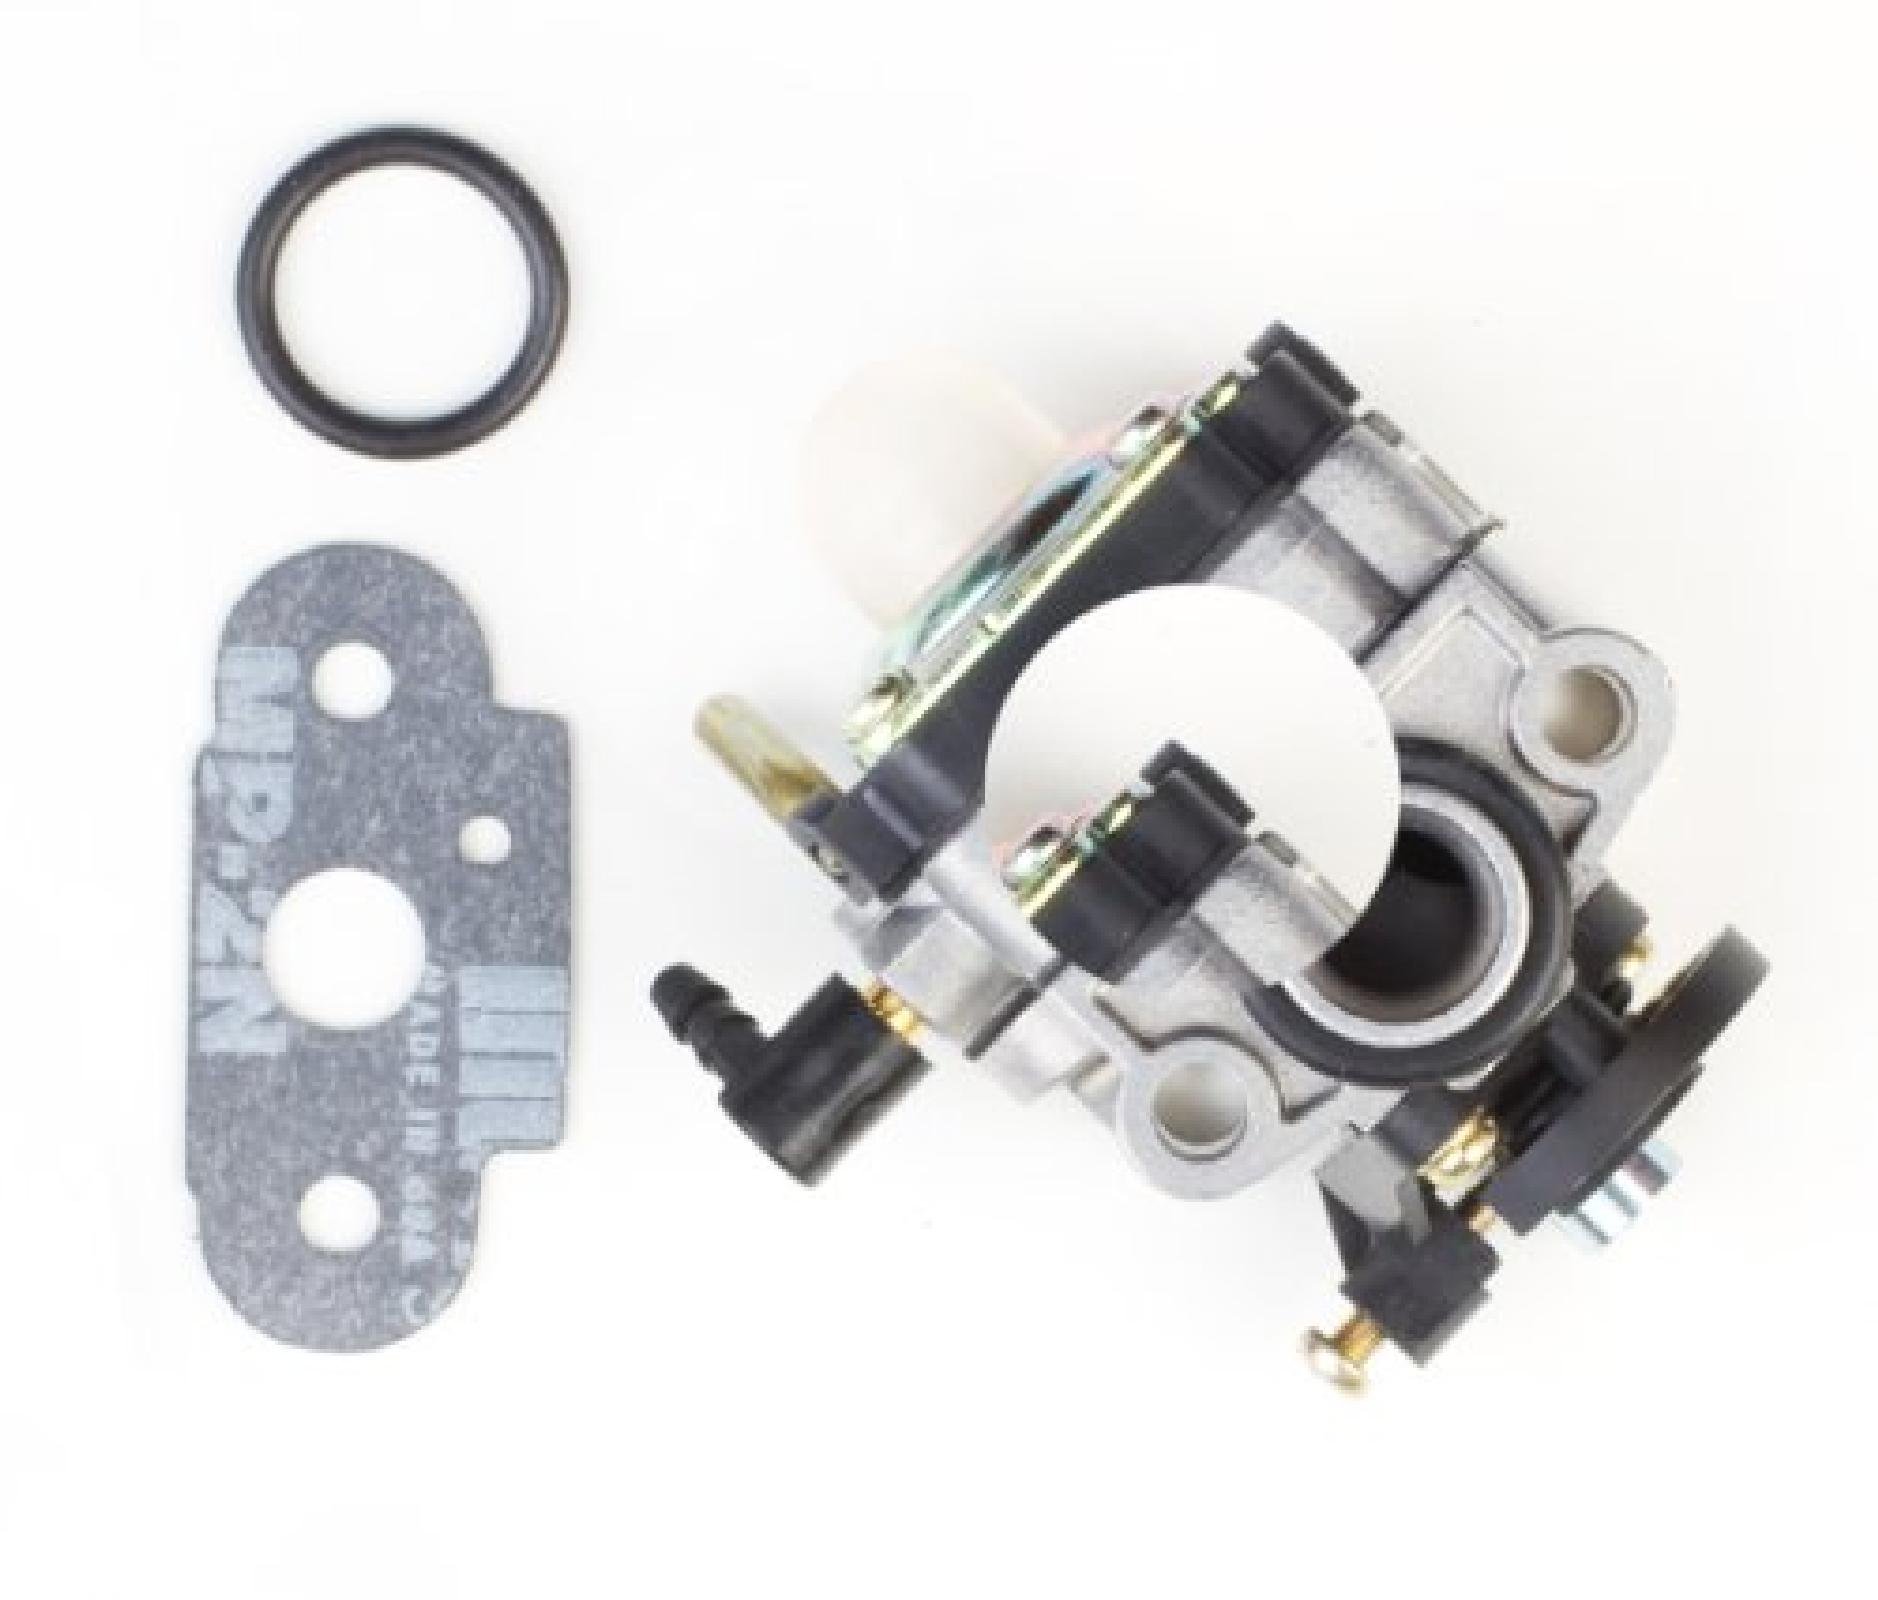 CARBURETOR part# 696949 by Briggs & Stratton